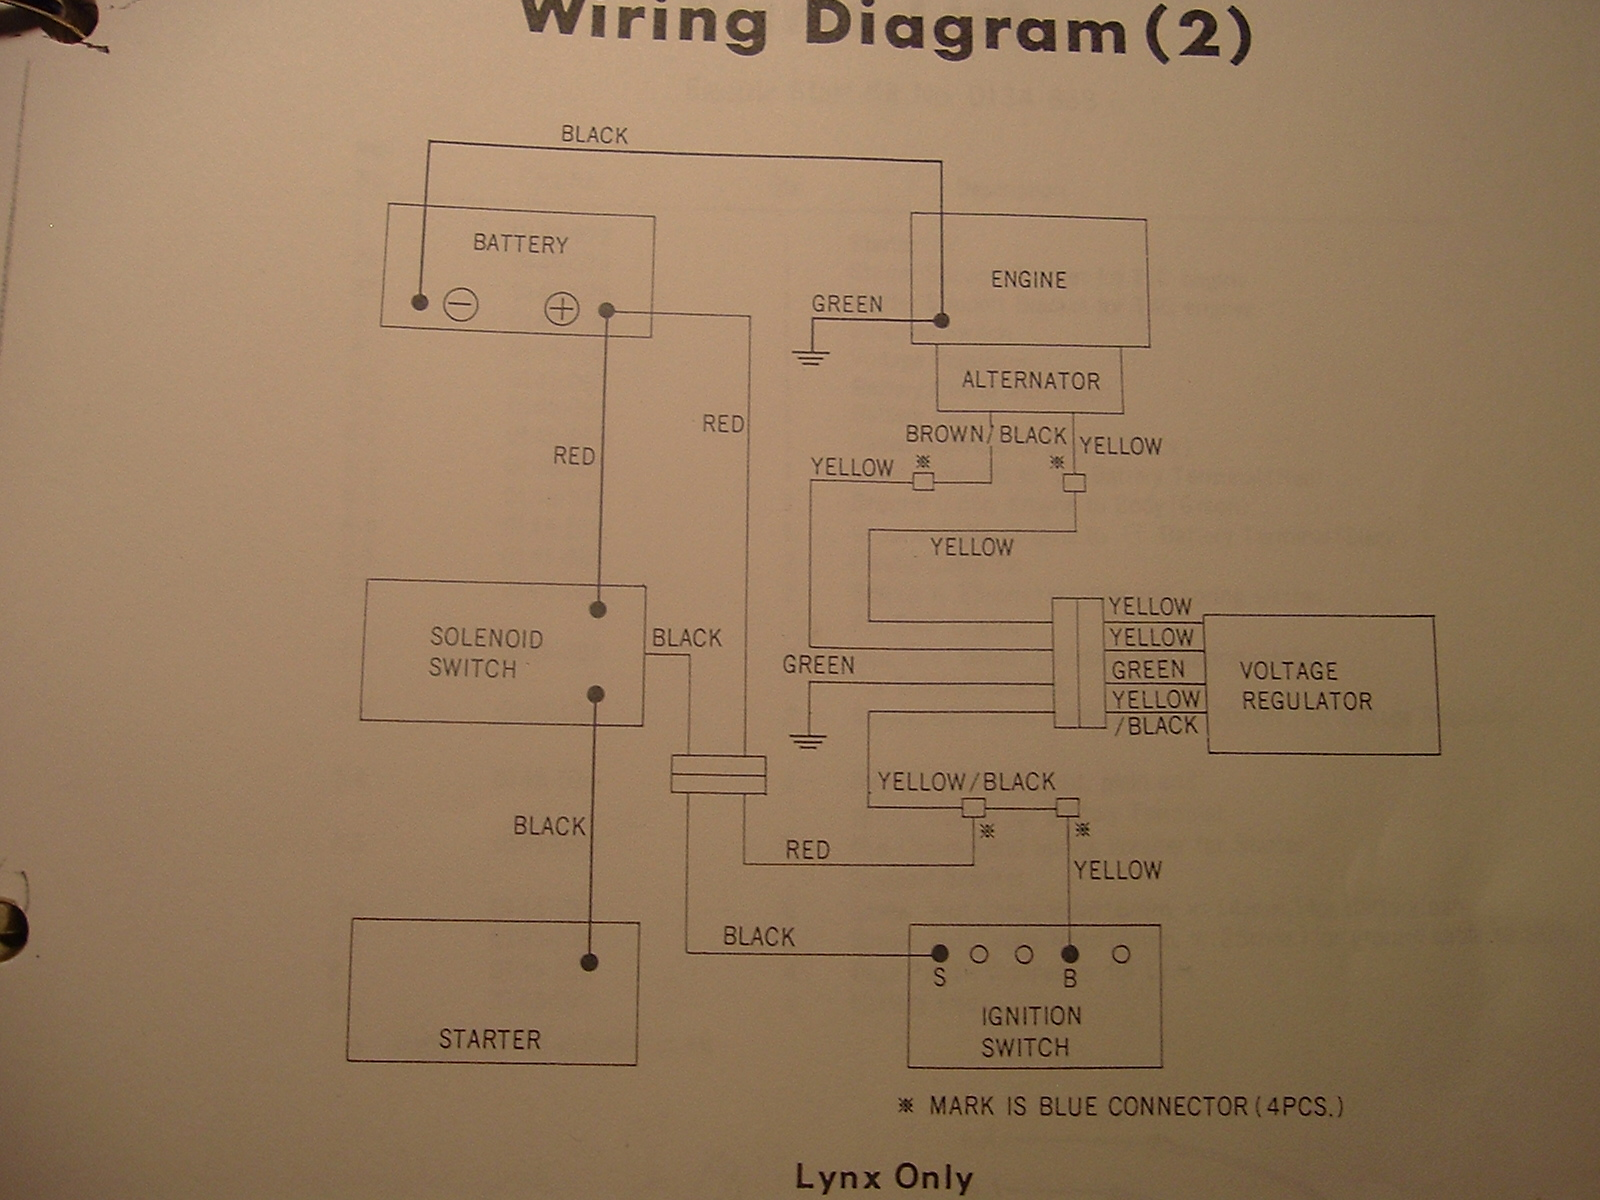 hight resolution of wrg 3749 arctic cat spirit 440 wiring diagram wiring diagram arctic cat spirit